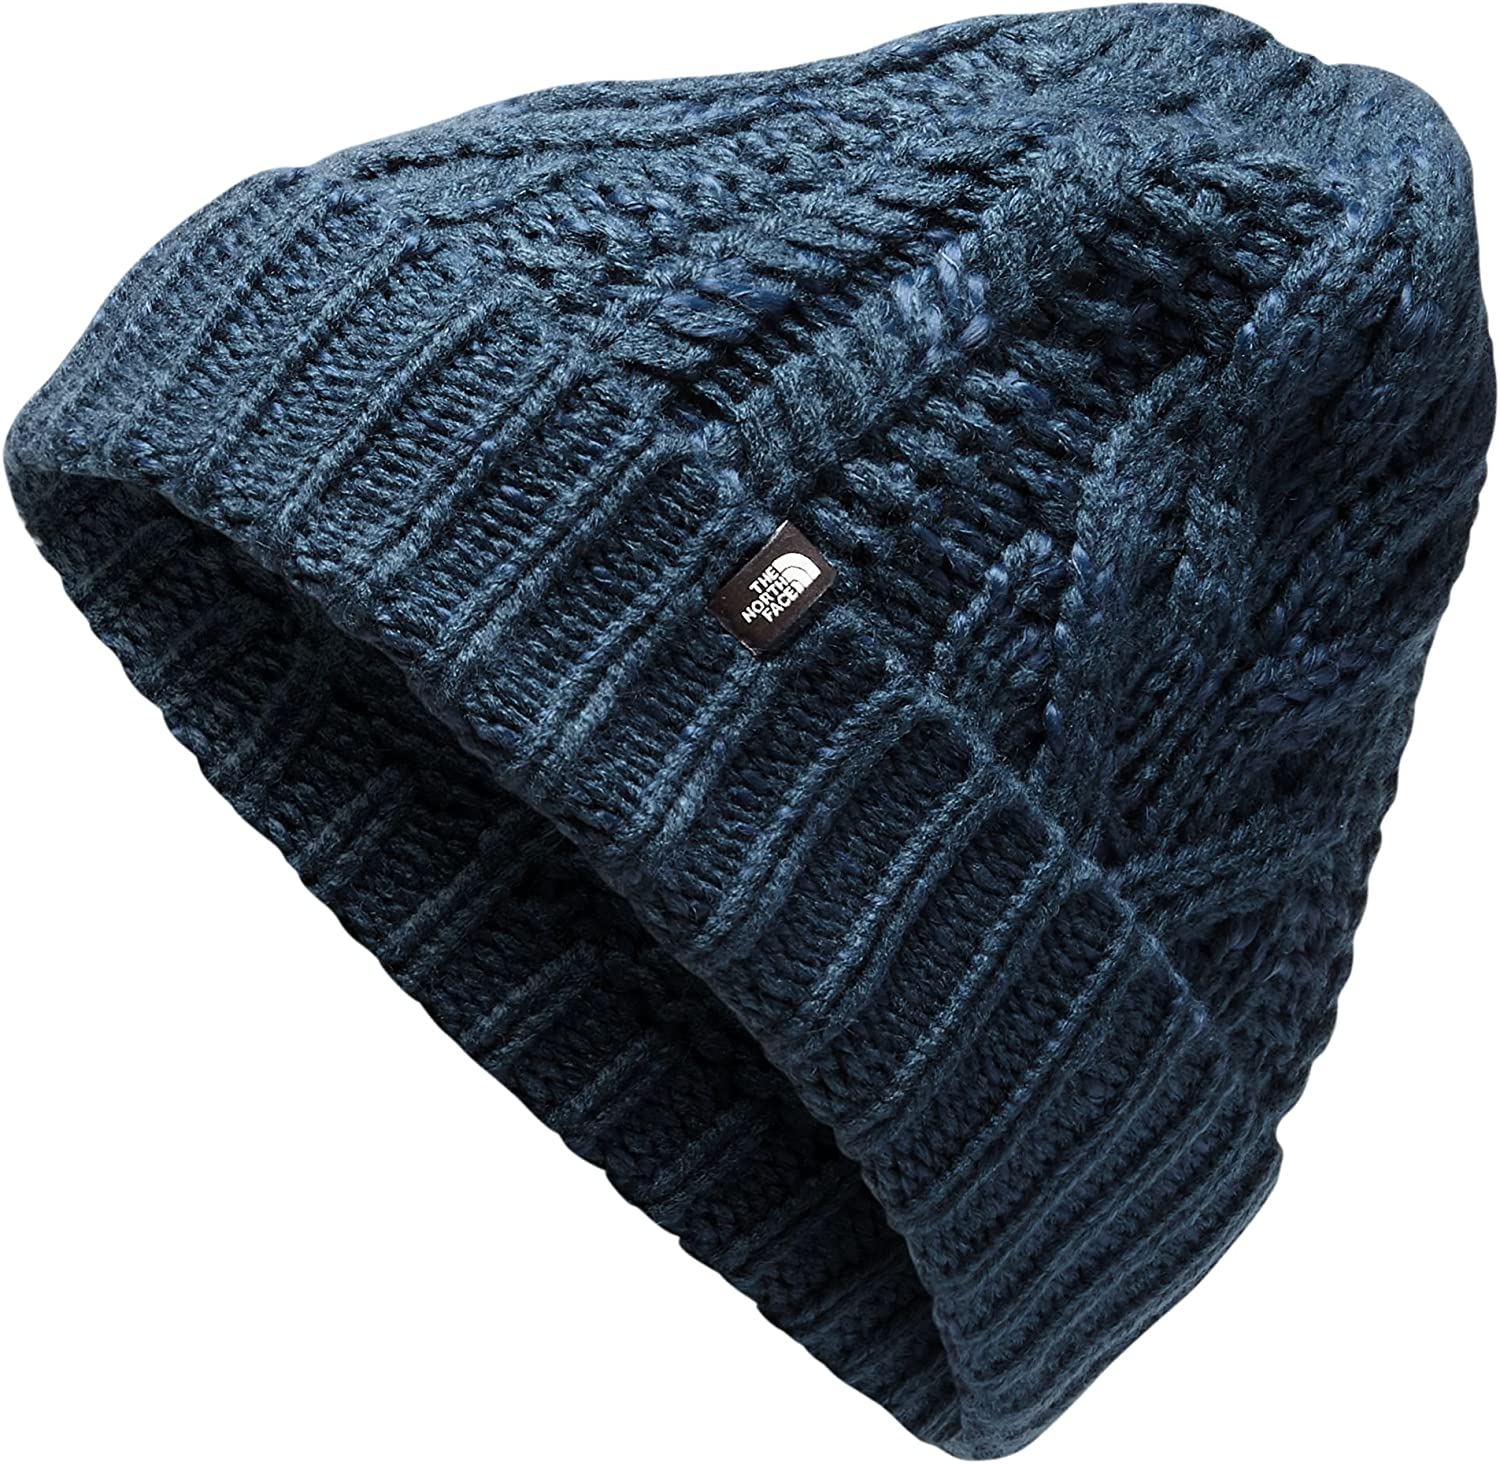 The North Face Minna Black Cable Knit Beanie Hat One Size Unisex New